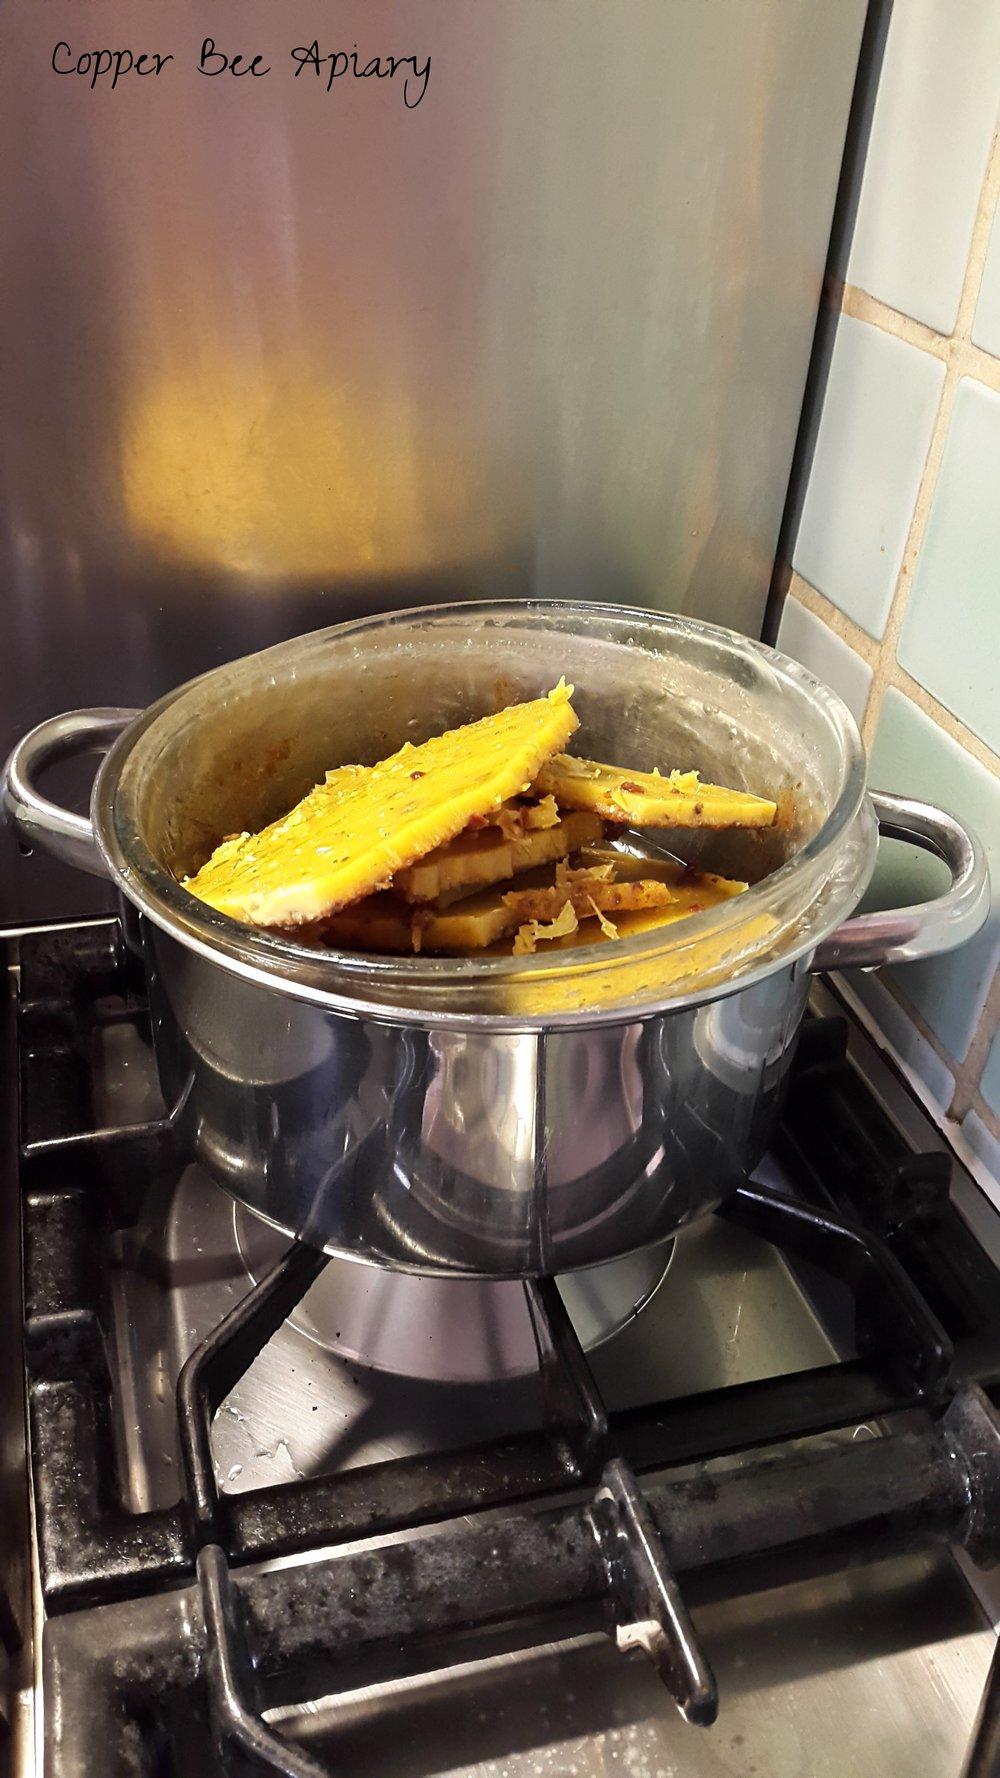 Remelting beeswax for filtering